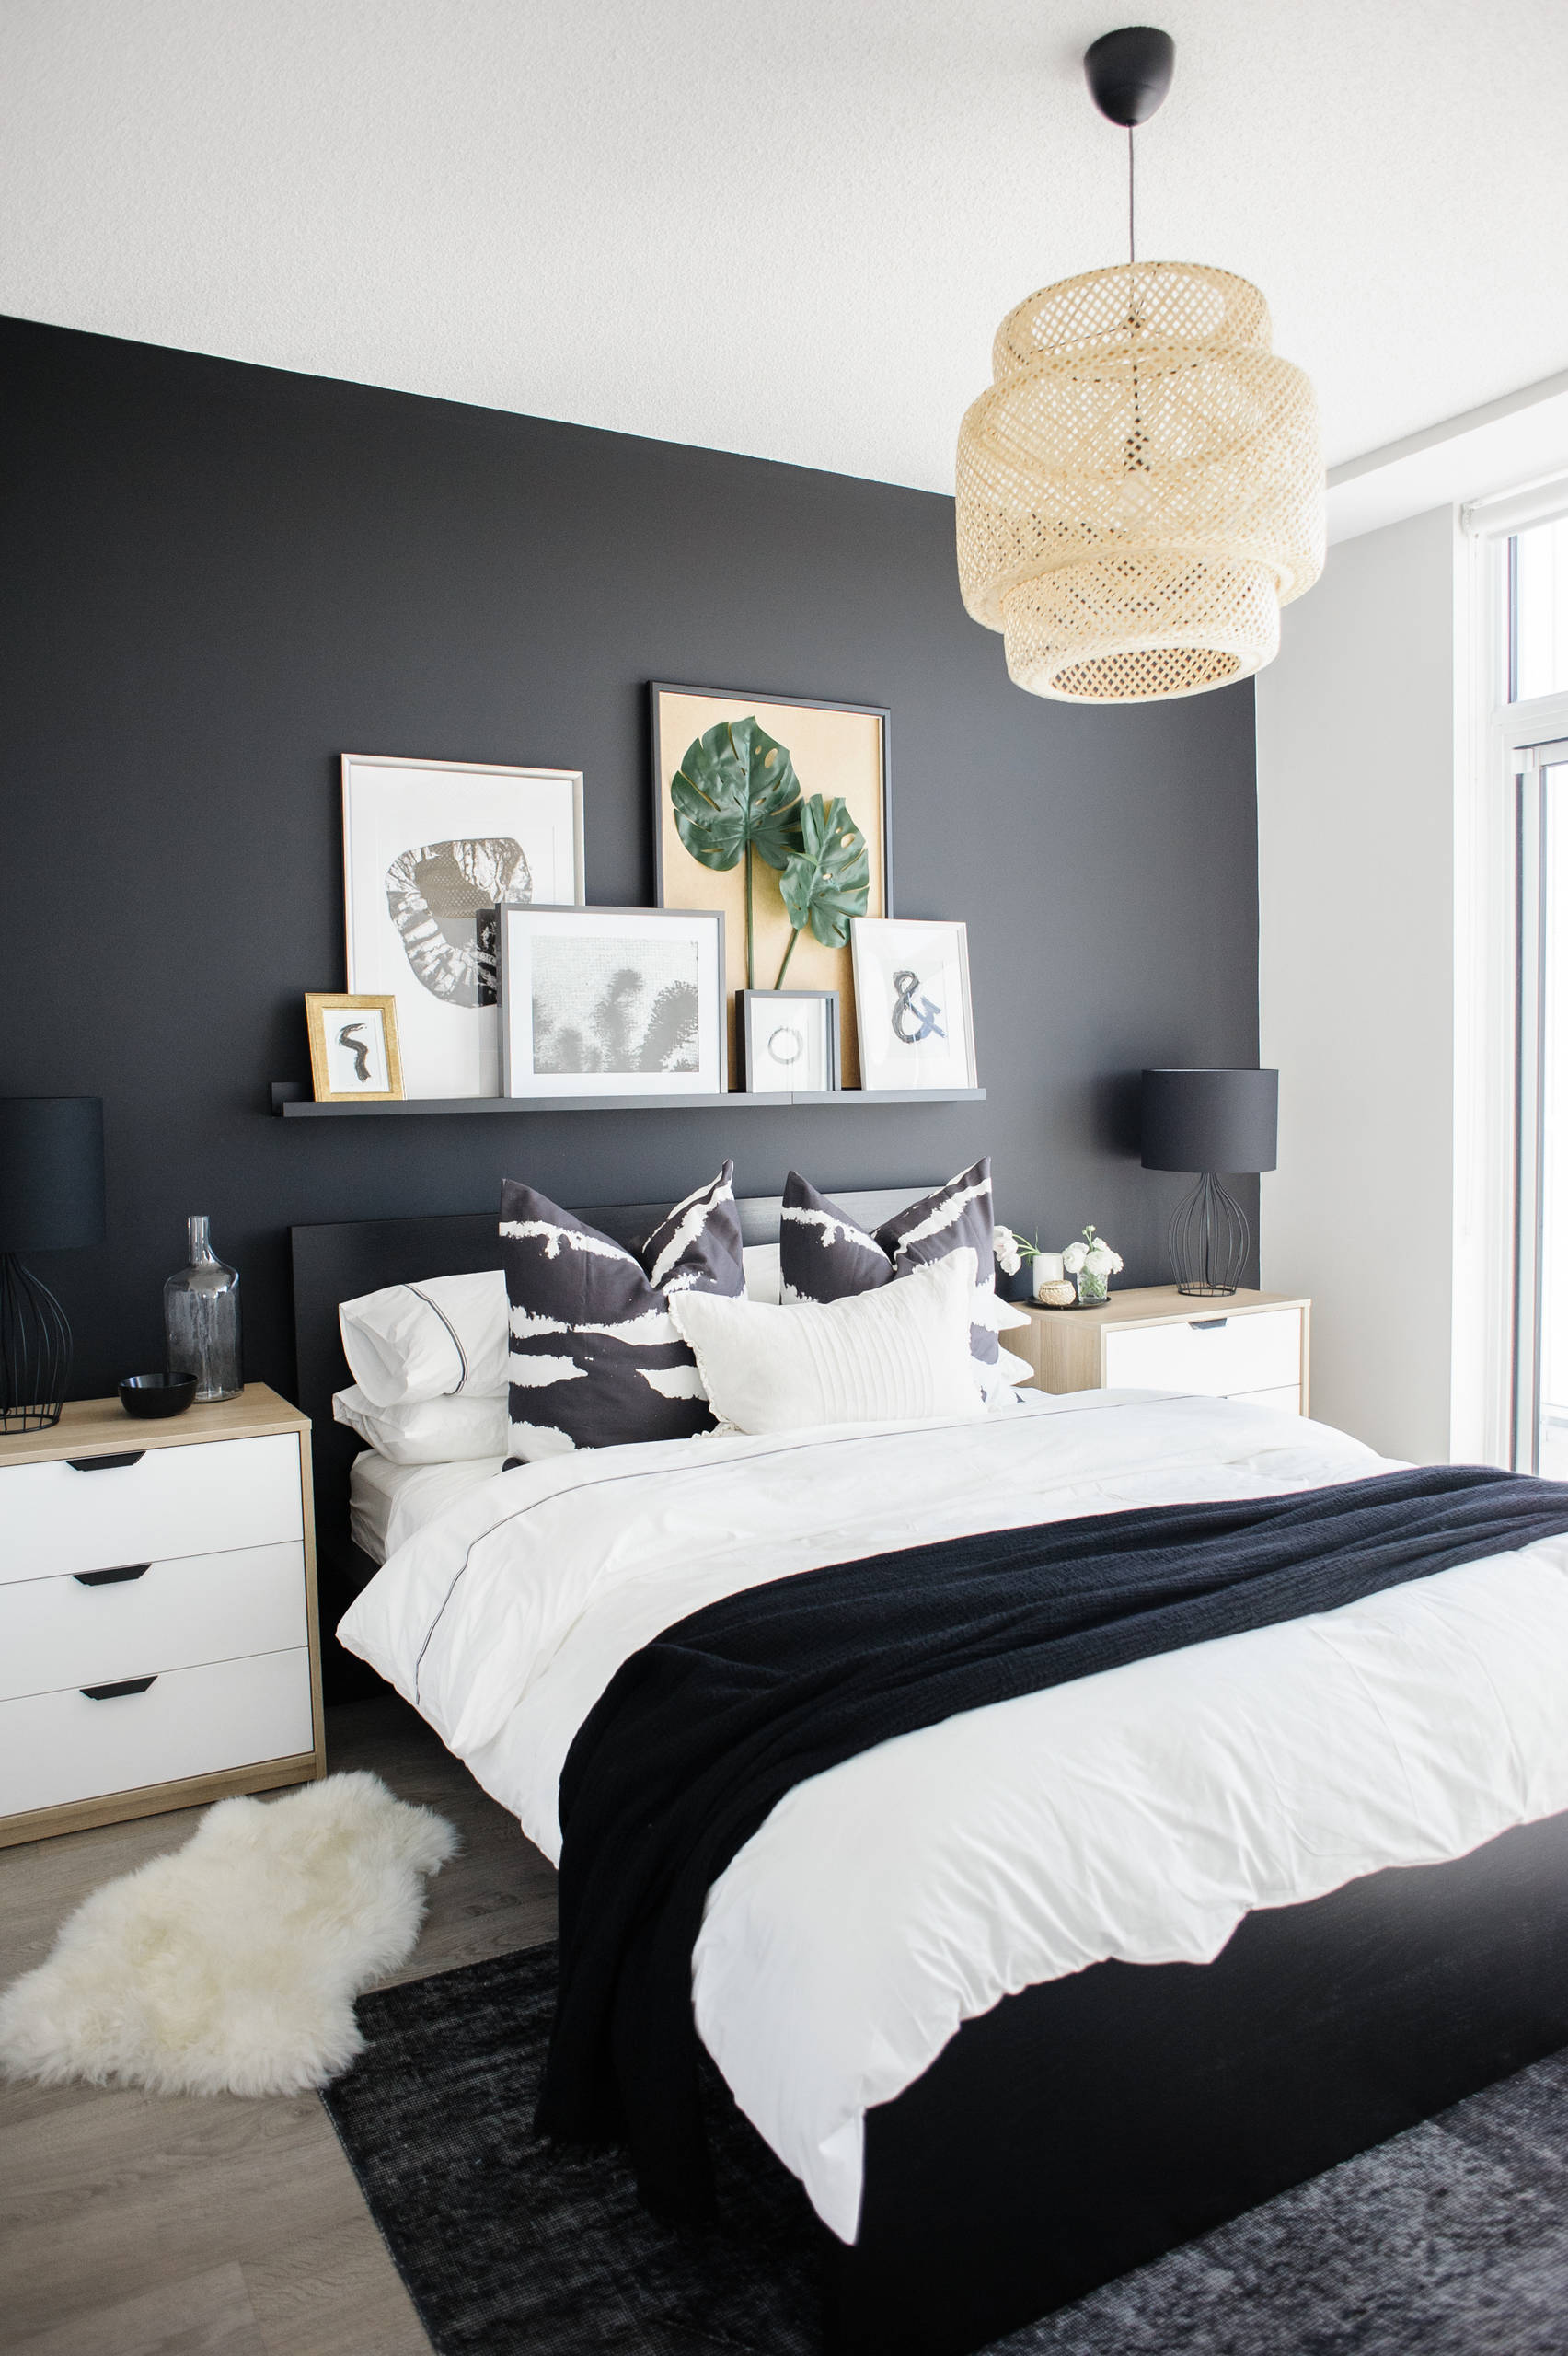 75 Beautiful Bedroom With Black Walls Pictures Ideas February 2021 Houzz